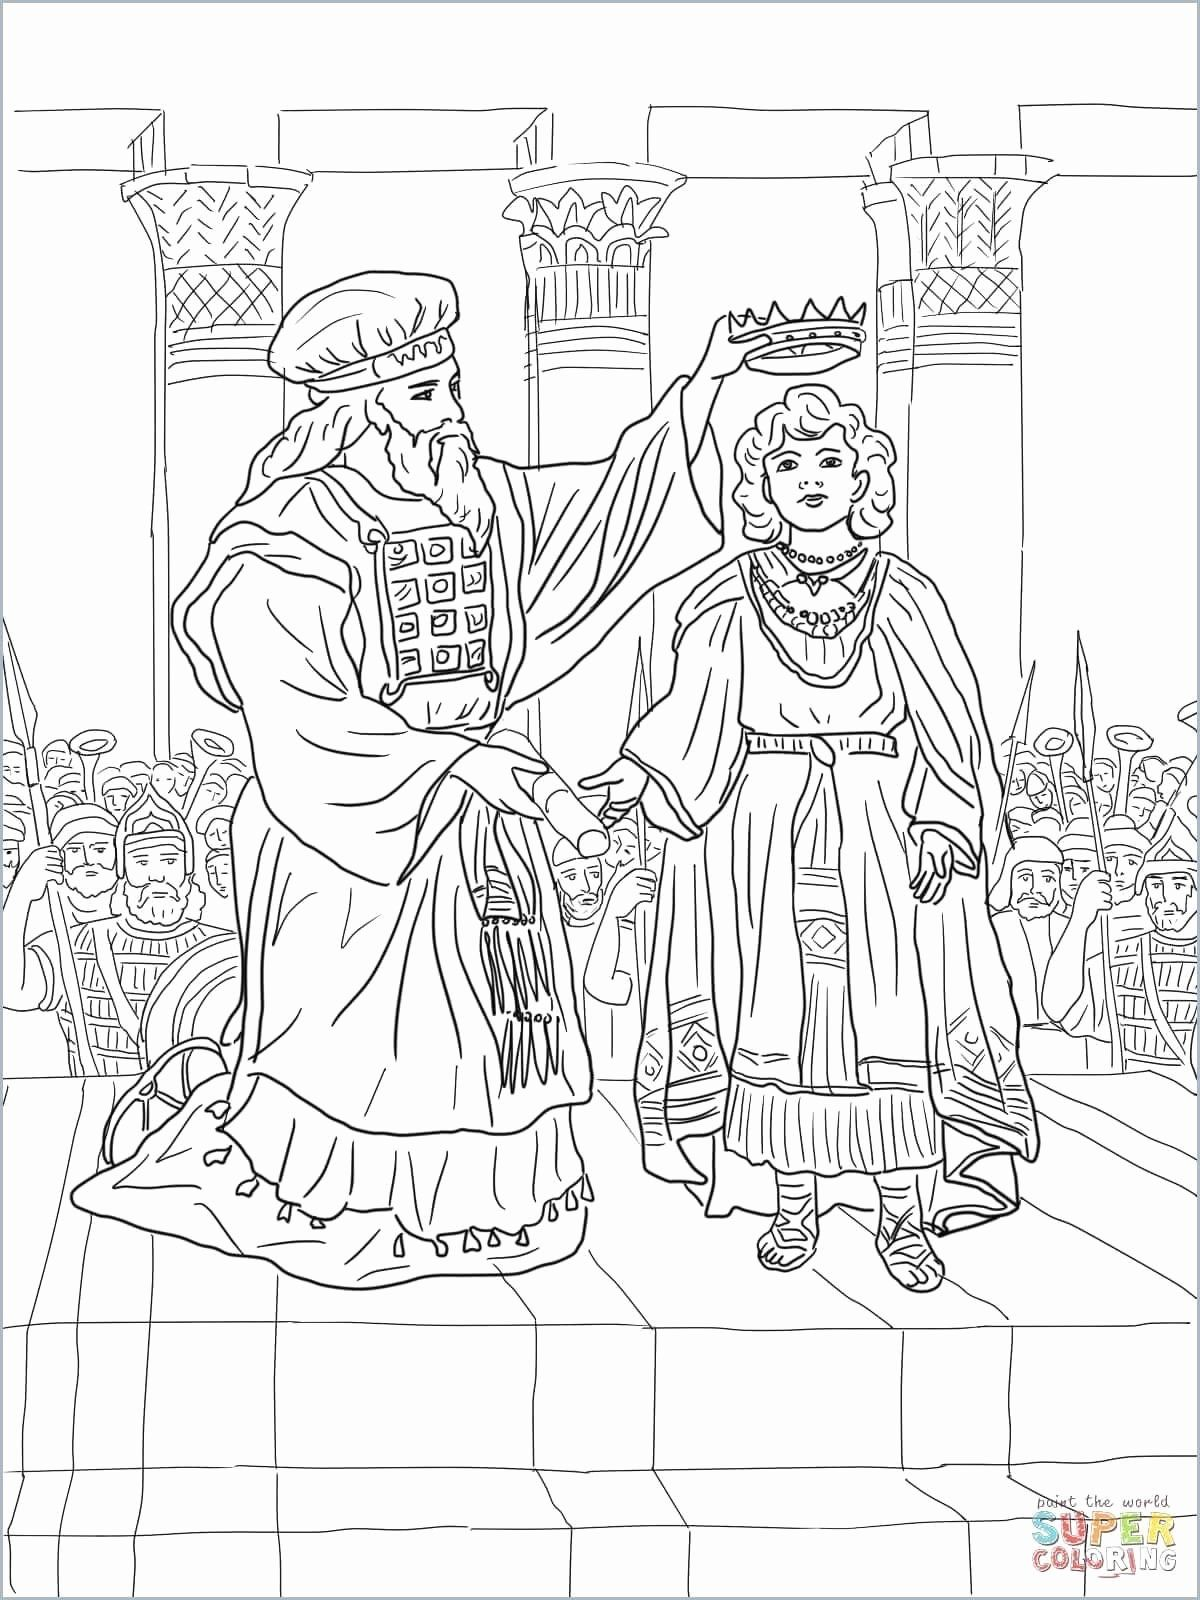 The Best Coloring Pages Ever New Bible Coloring Pages Best Elijah